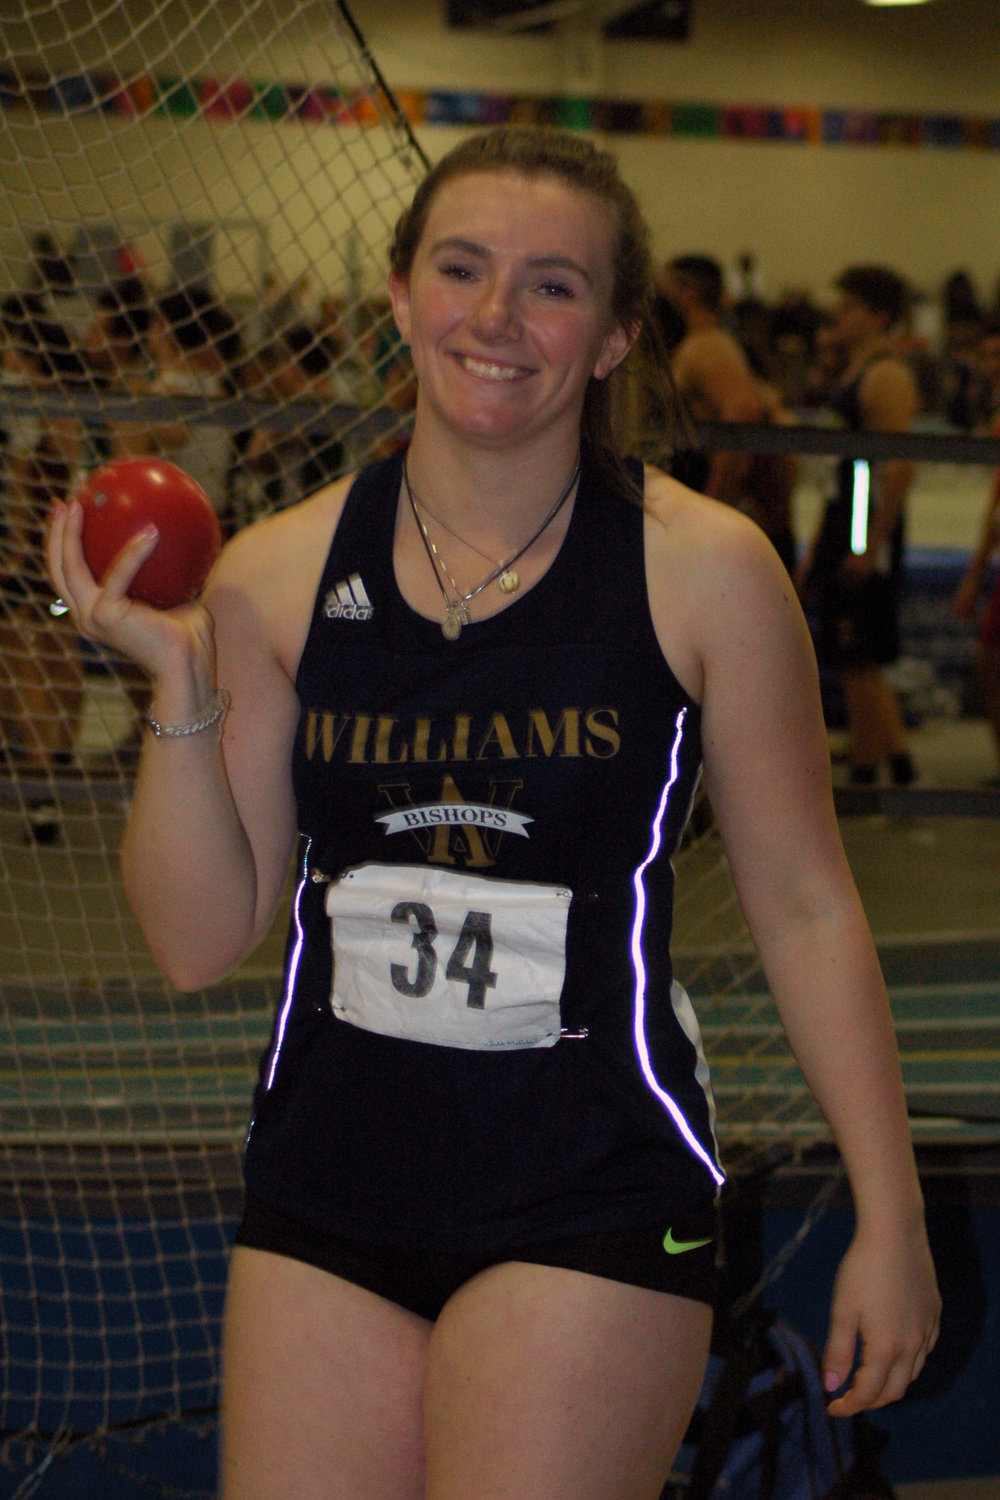 Senior Julia McRoberts of Hanover was the leading shot putter in the Tri-County League, and finished her second consecutive season undefeated.